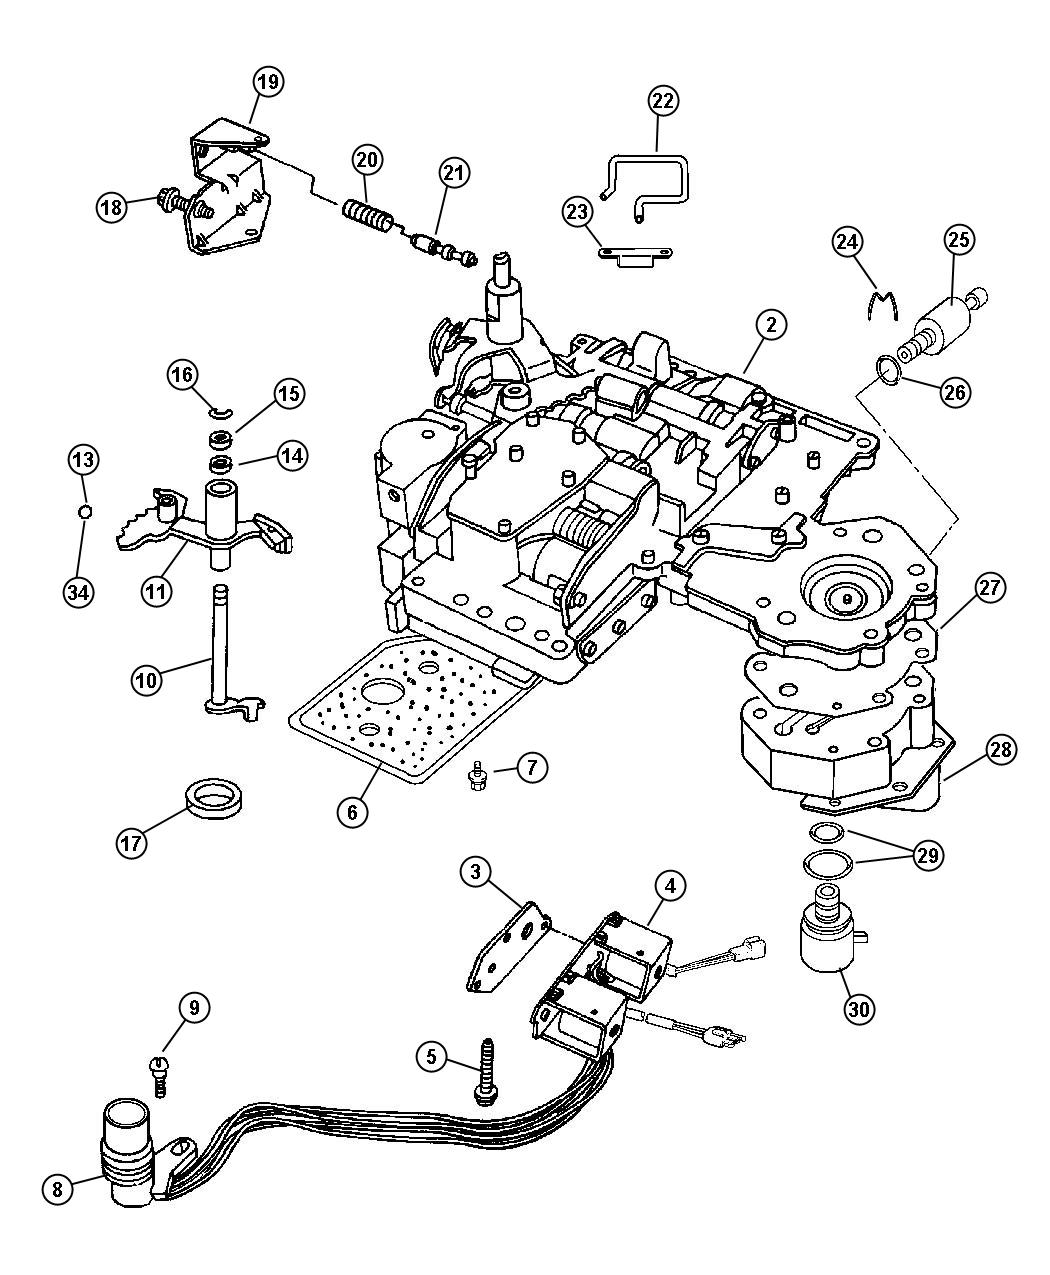 Dodge Factory Trailer Plug Wiring Diagram 1999, Dodge, Get